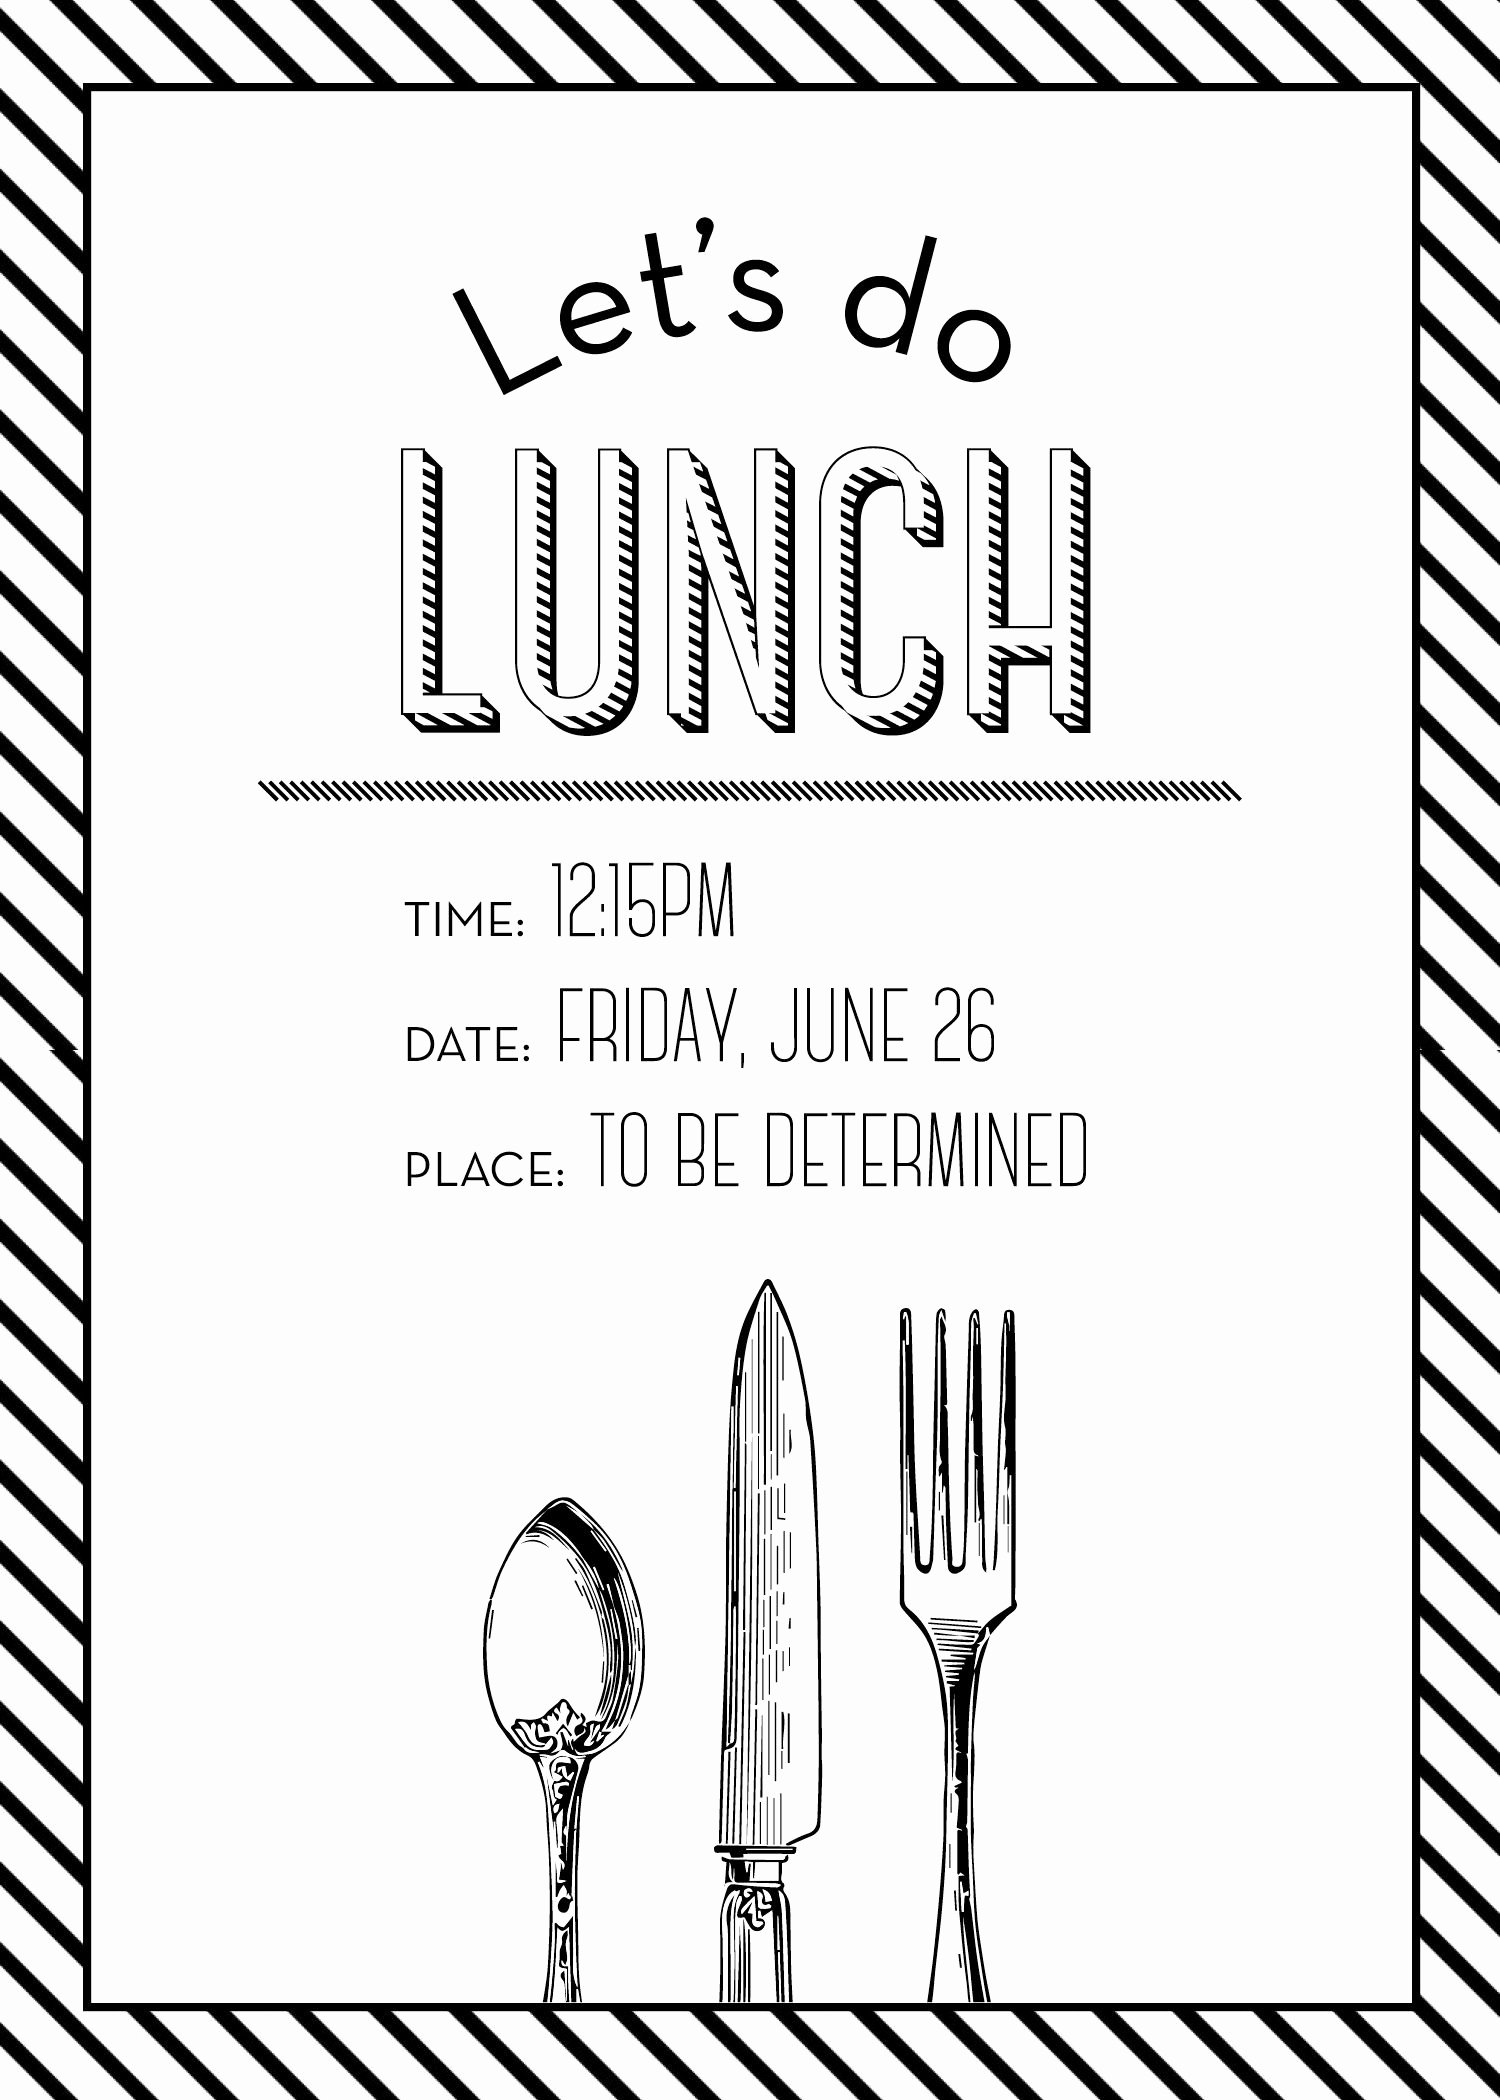 Free Lunch Invitation Template Elegant Simple but Elegant Lunch Invitation